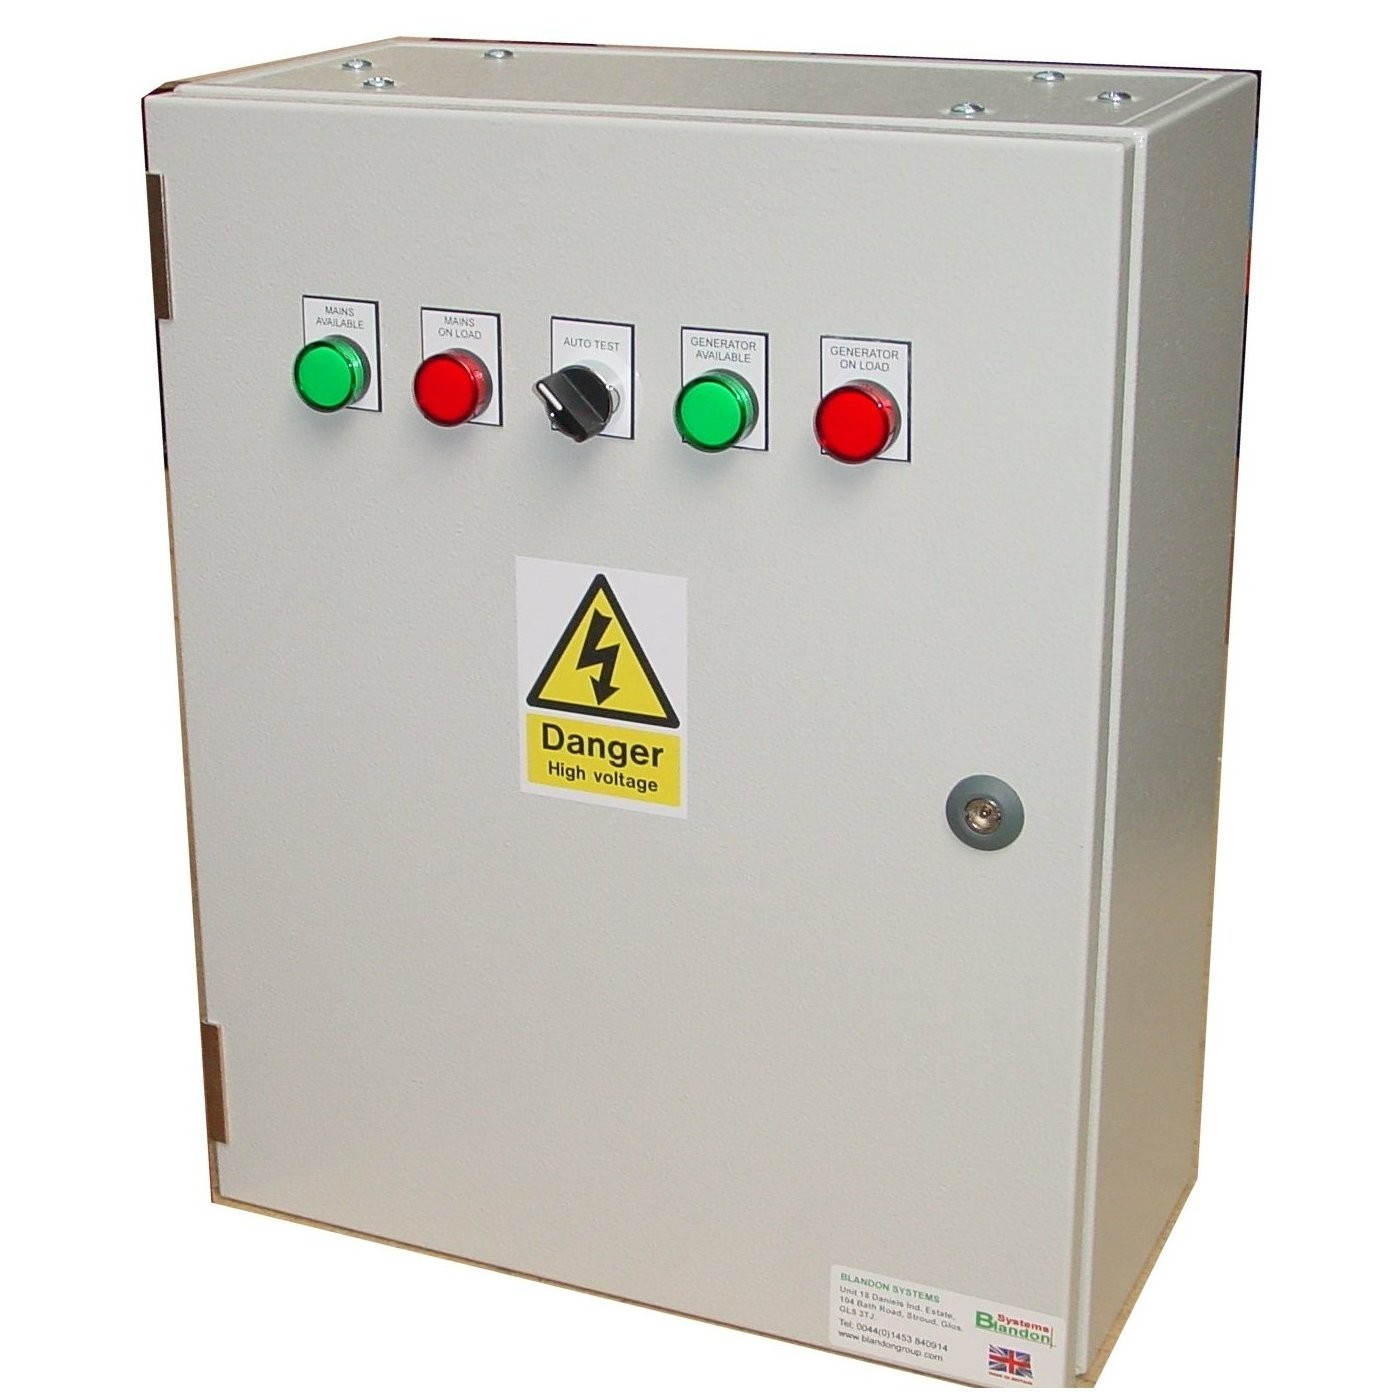 45A ATS Single Phase 230V, UVR Controlled, ABB Contactors